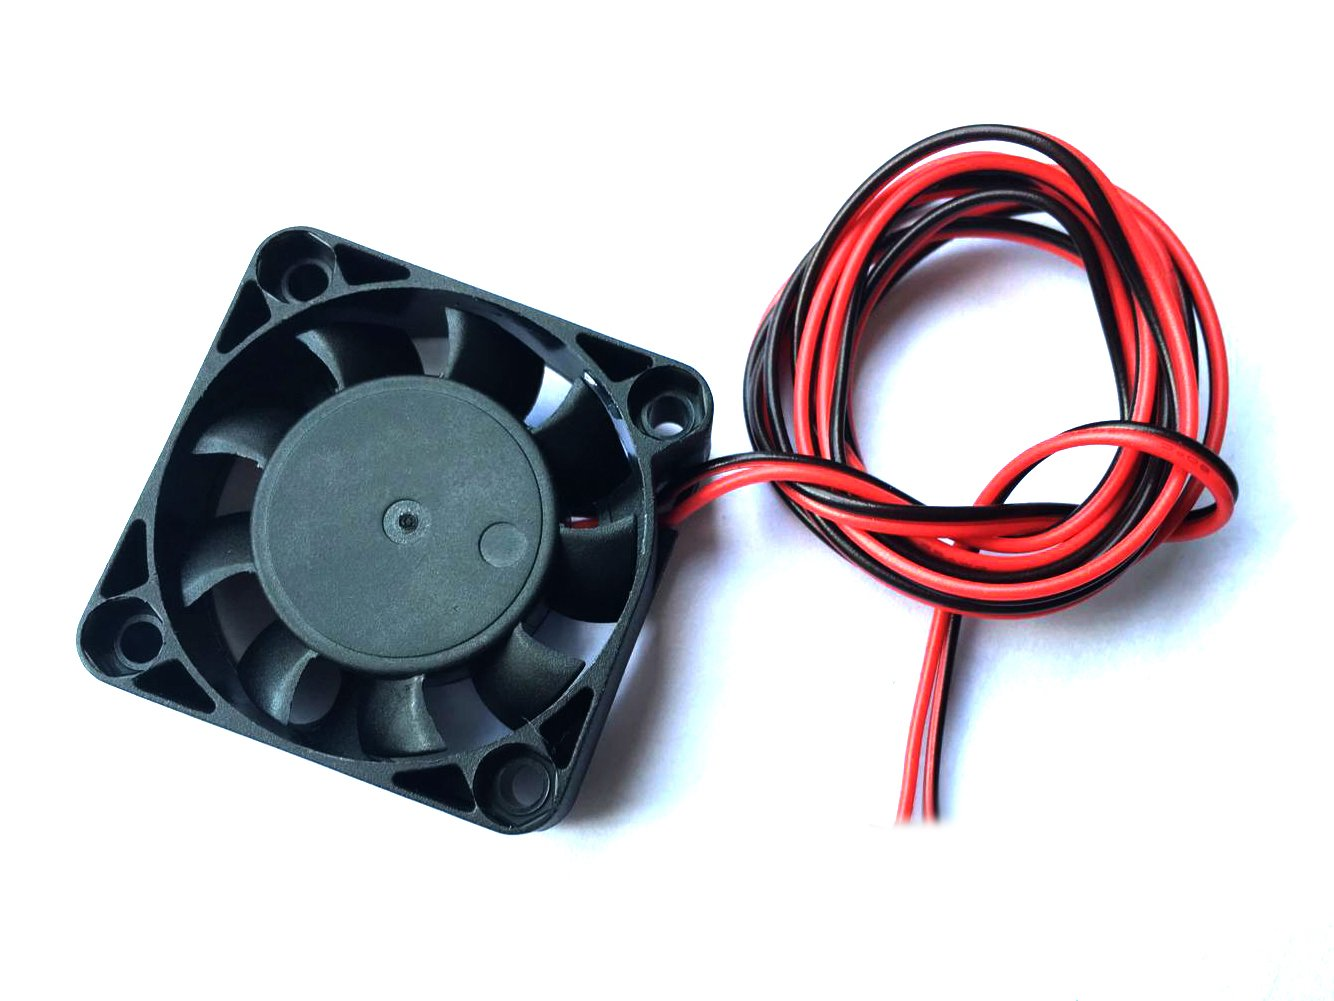 10164 HICTOP 4010 Fan 2 Pcs 24V 40x40x10mm Cooling Fan for 3D printer Parts Reprap Prusa I3 HIC Technology 3DP AMZN